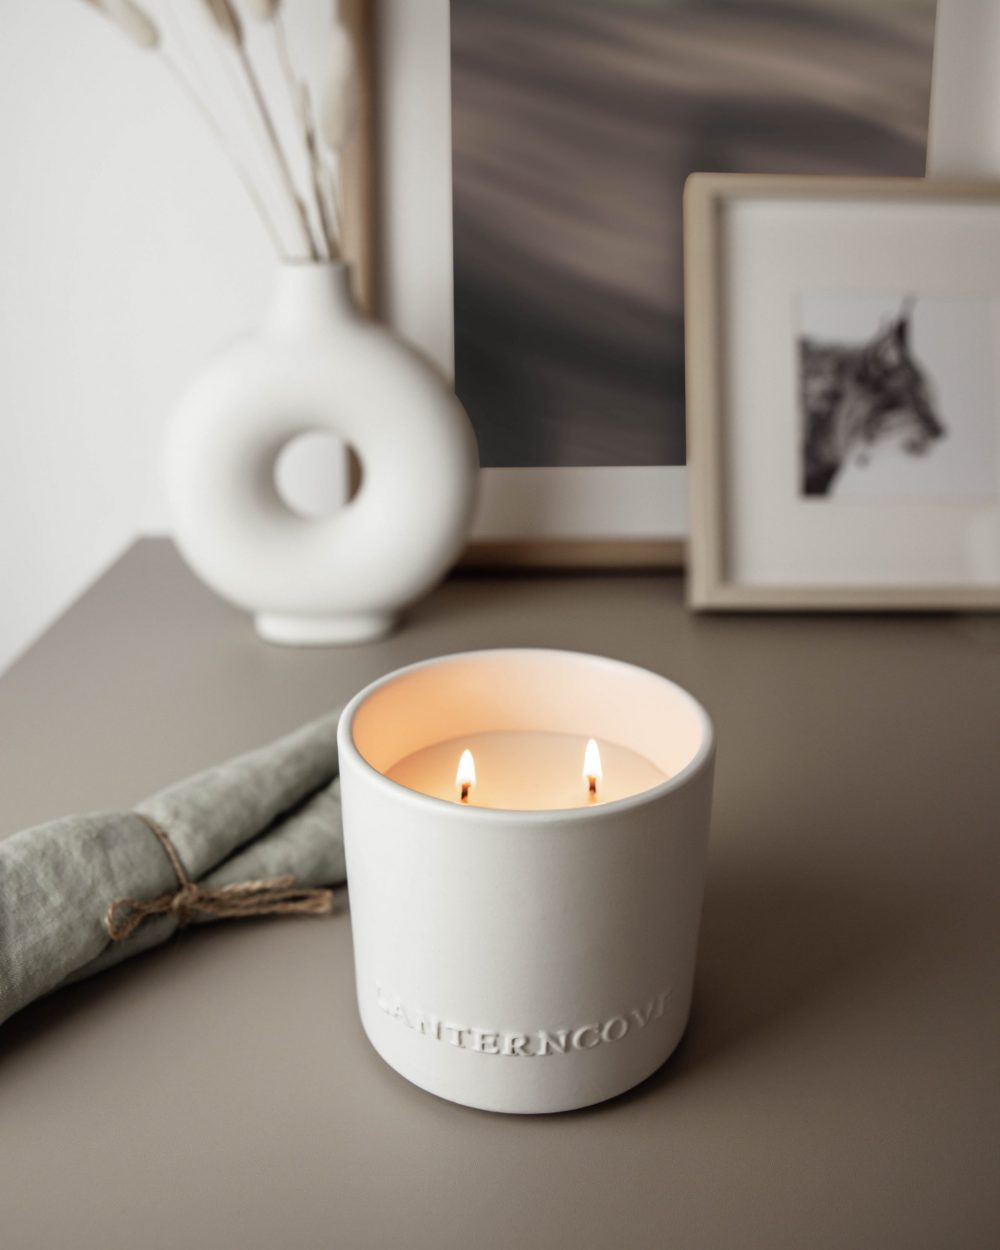 Lantern Cove candle styled with vase and photo frames